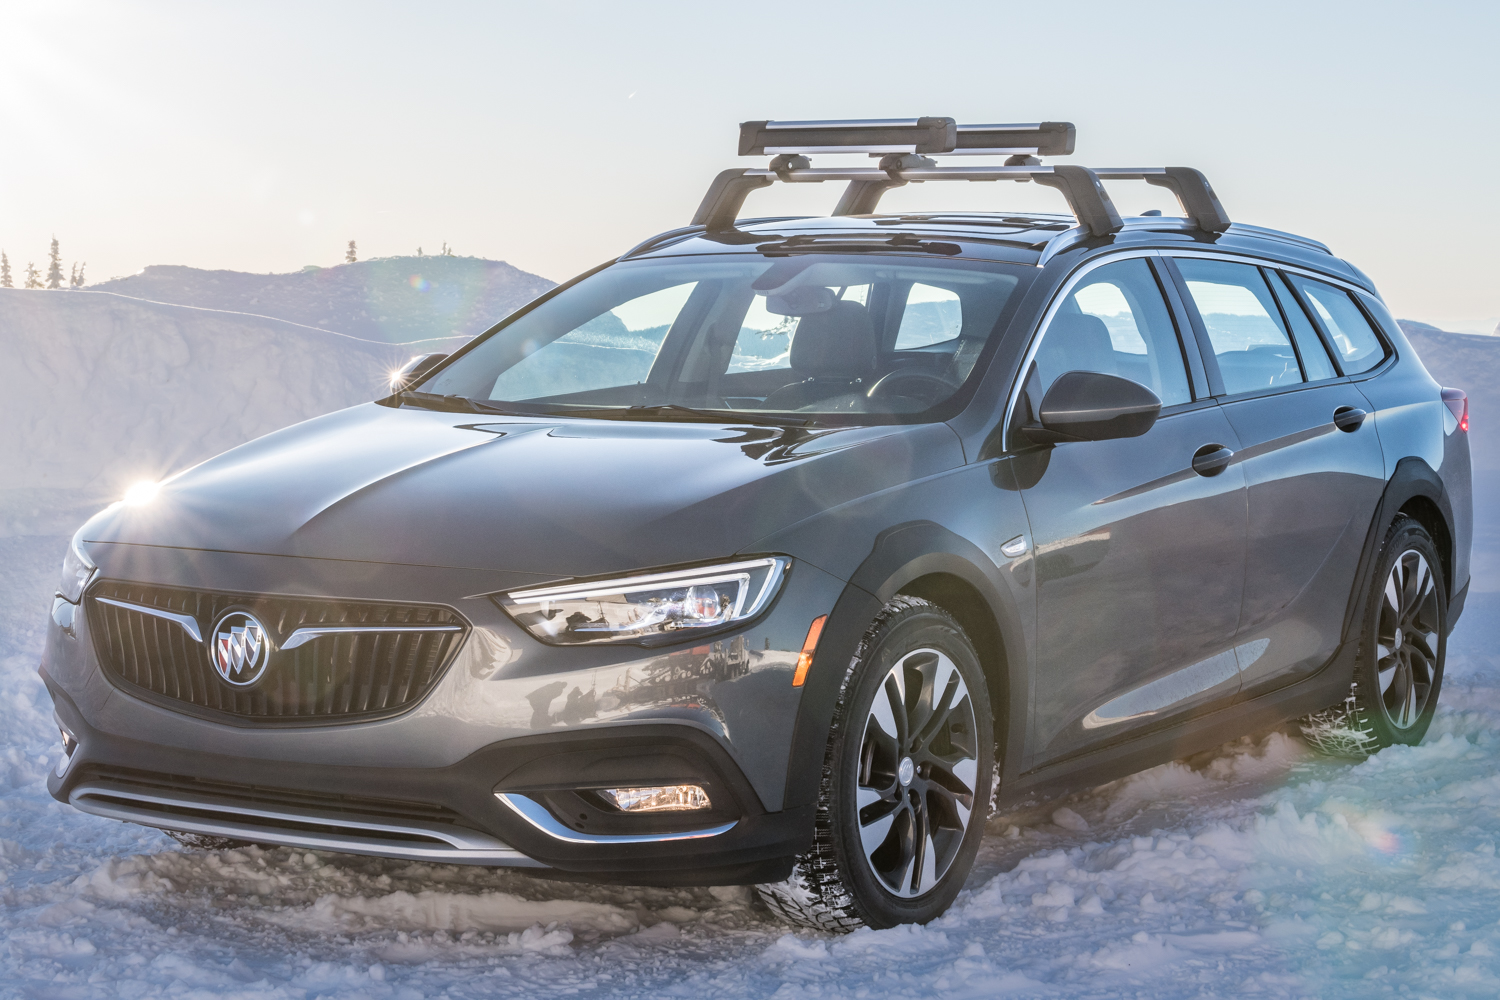 2018 Buick Regal TourX Review: King of the Mountain Town